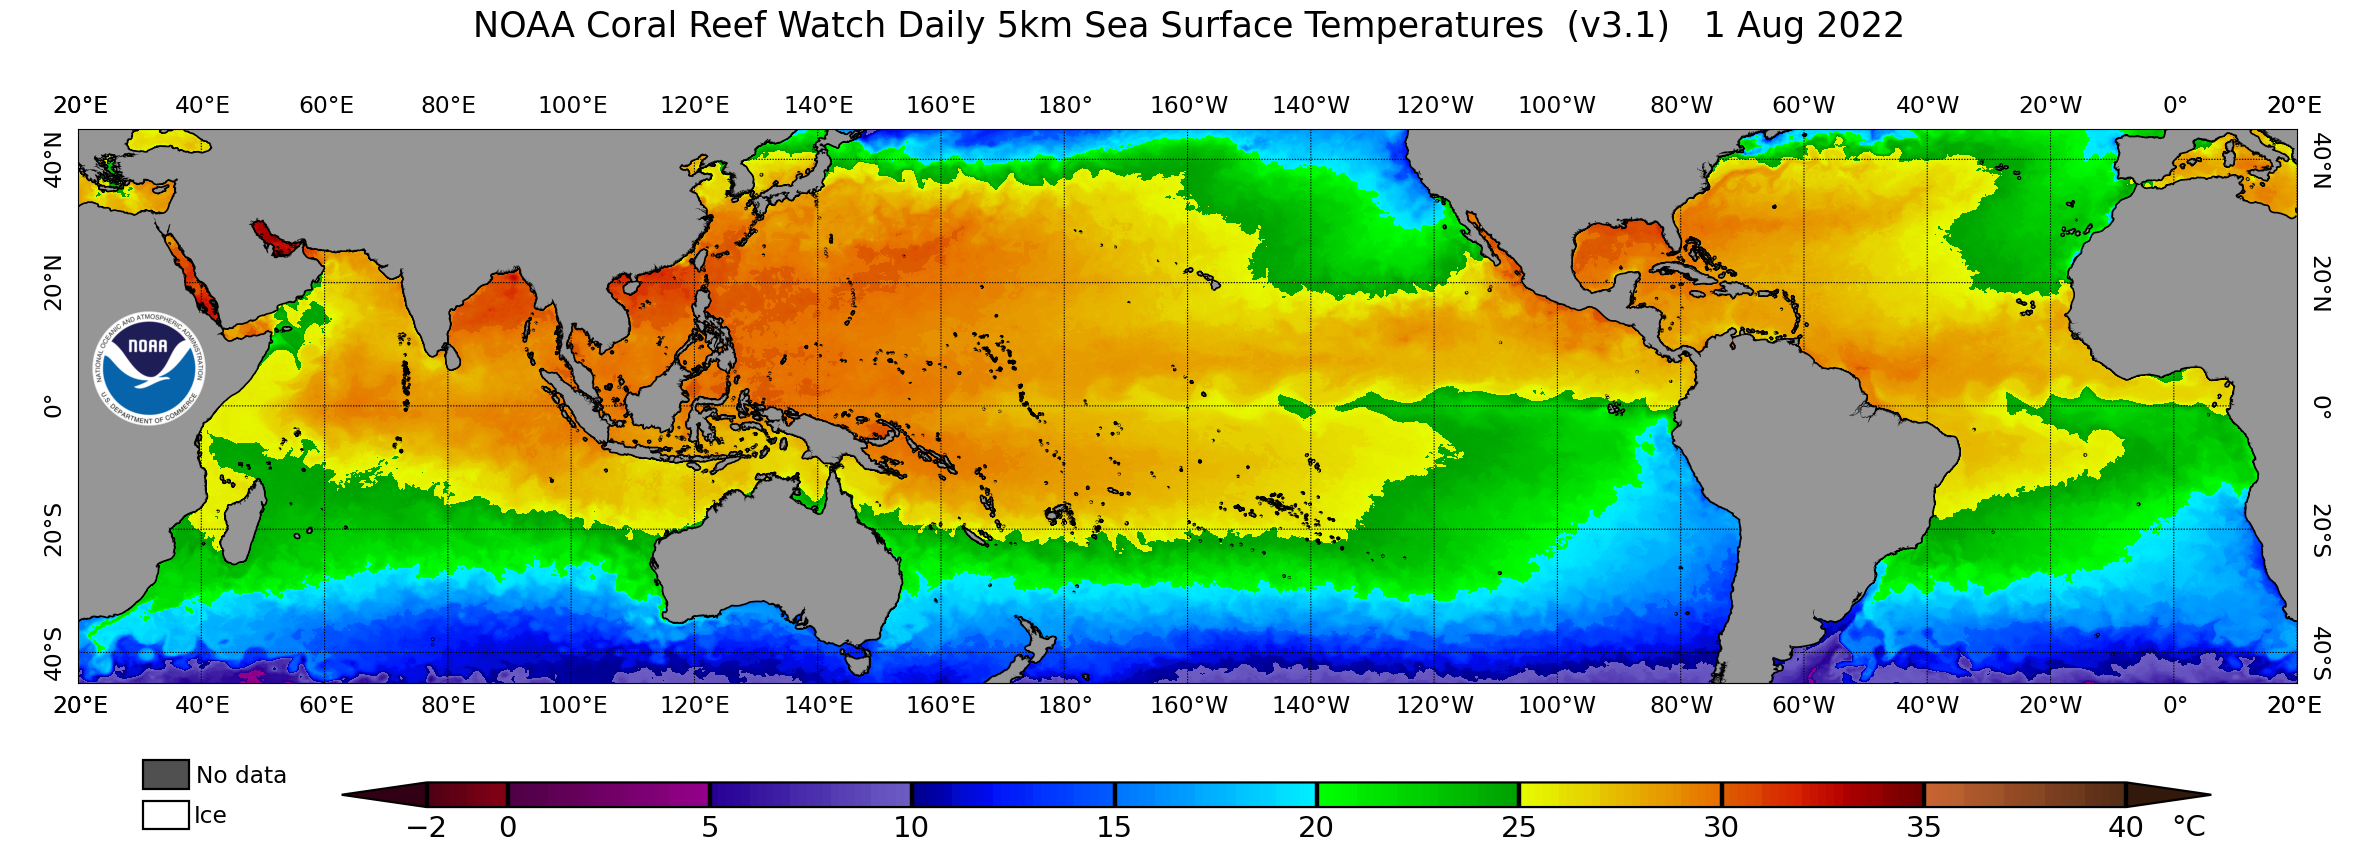 Global Sea Surface Temperature image